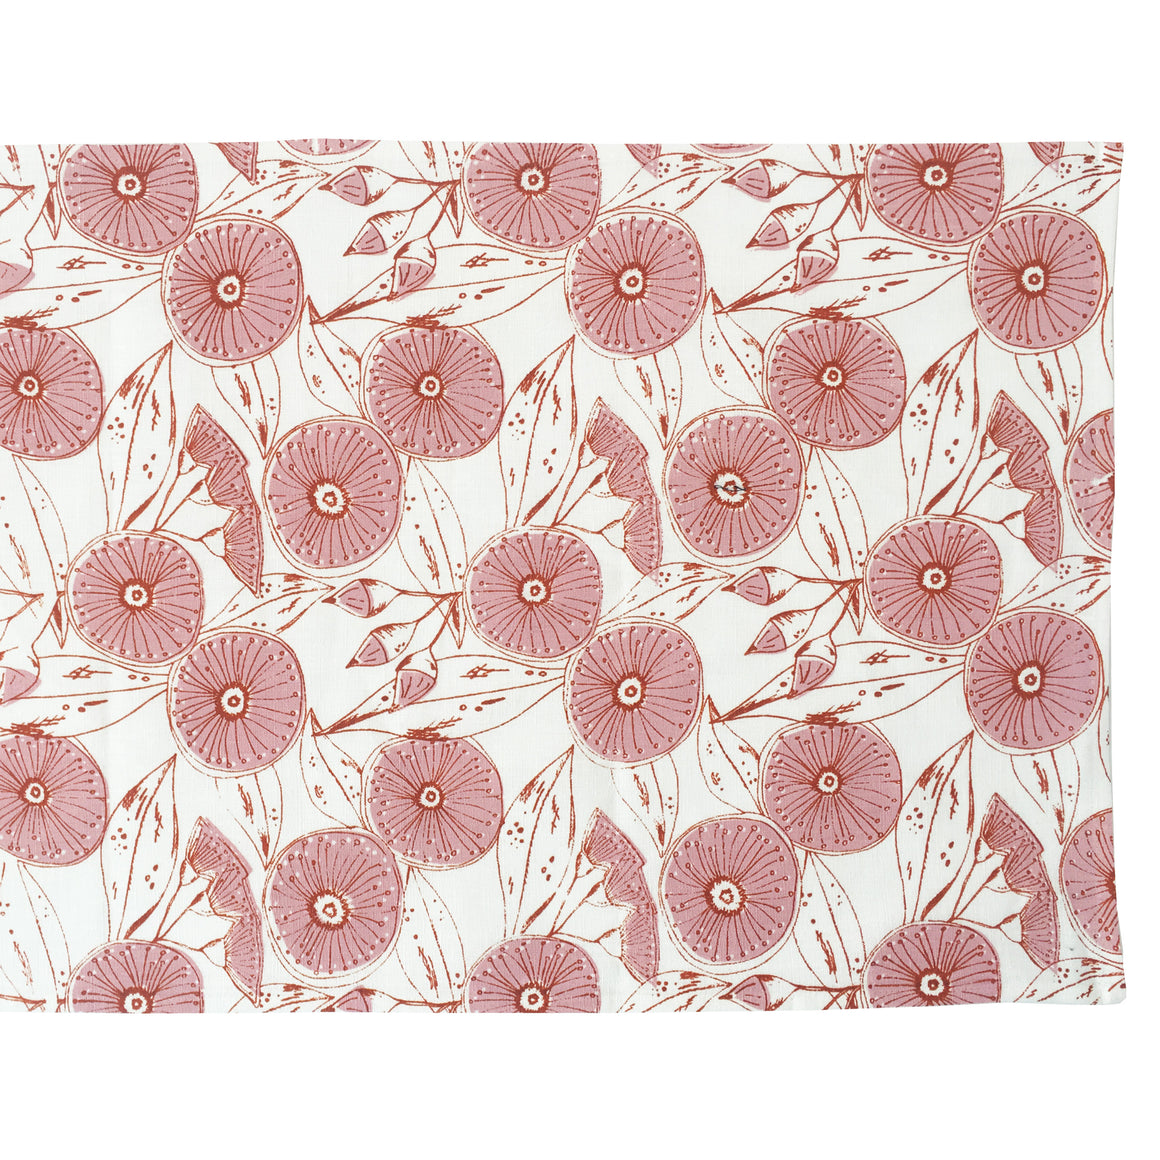 Gum Flower Table Runner - Pink